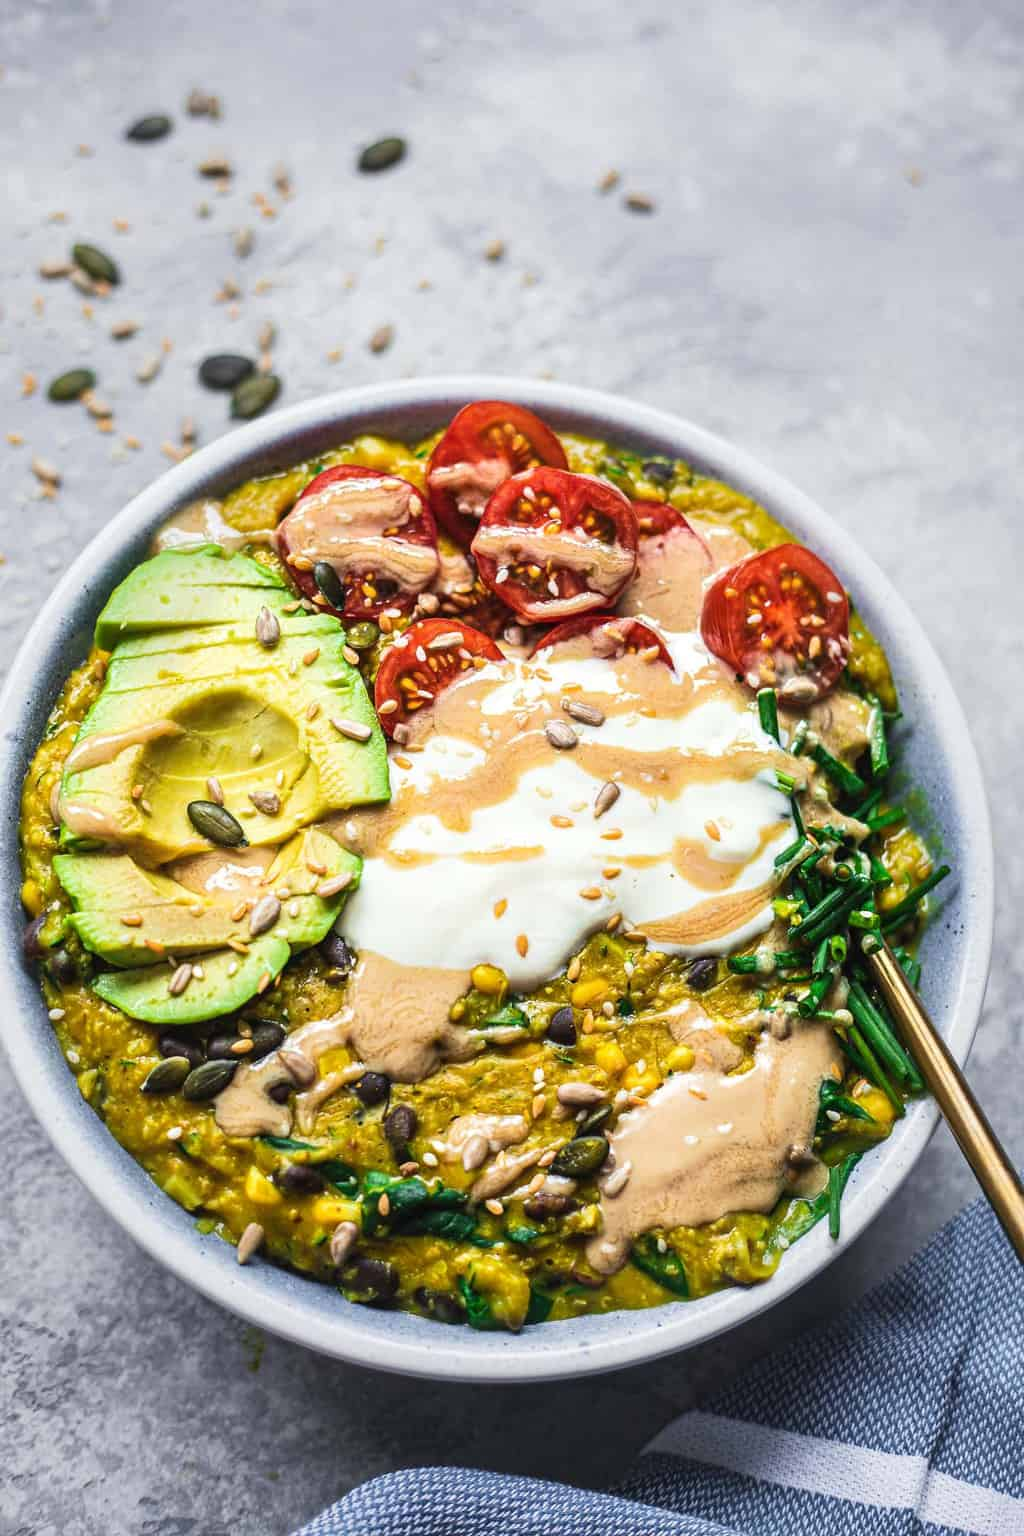 Vegan turmeric oats with black beans and zucchini